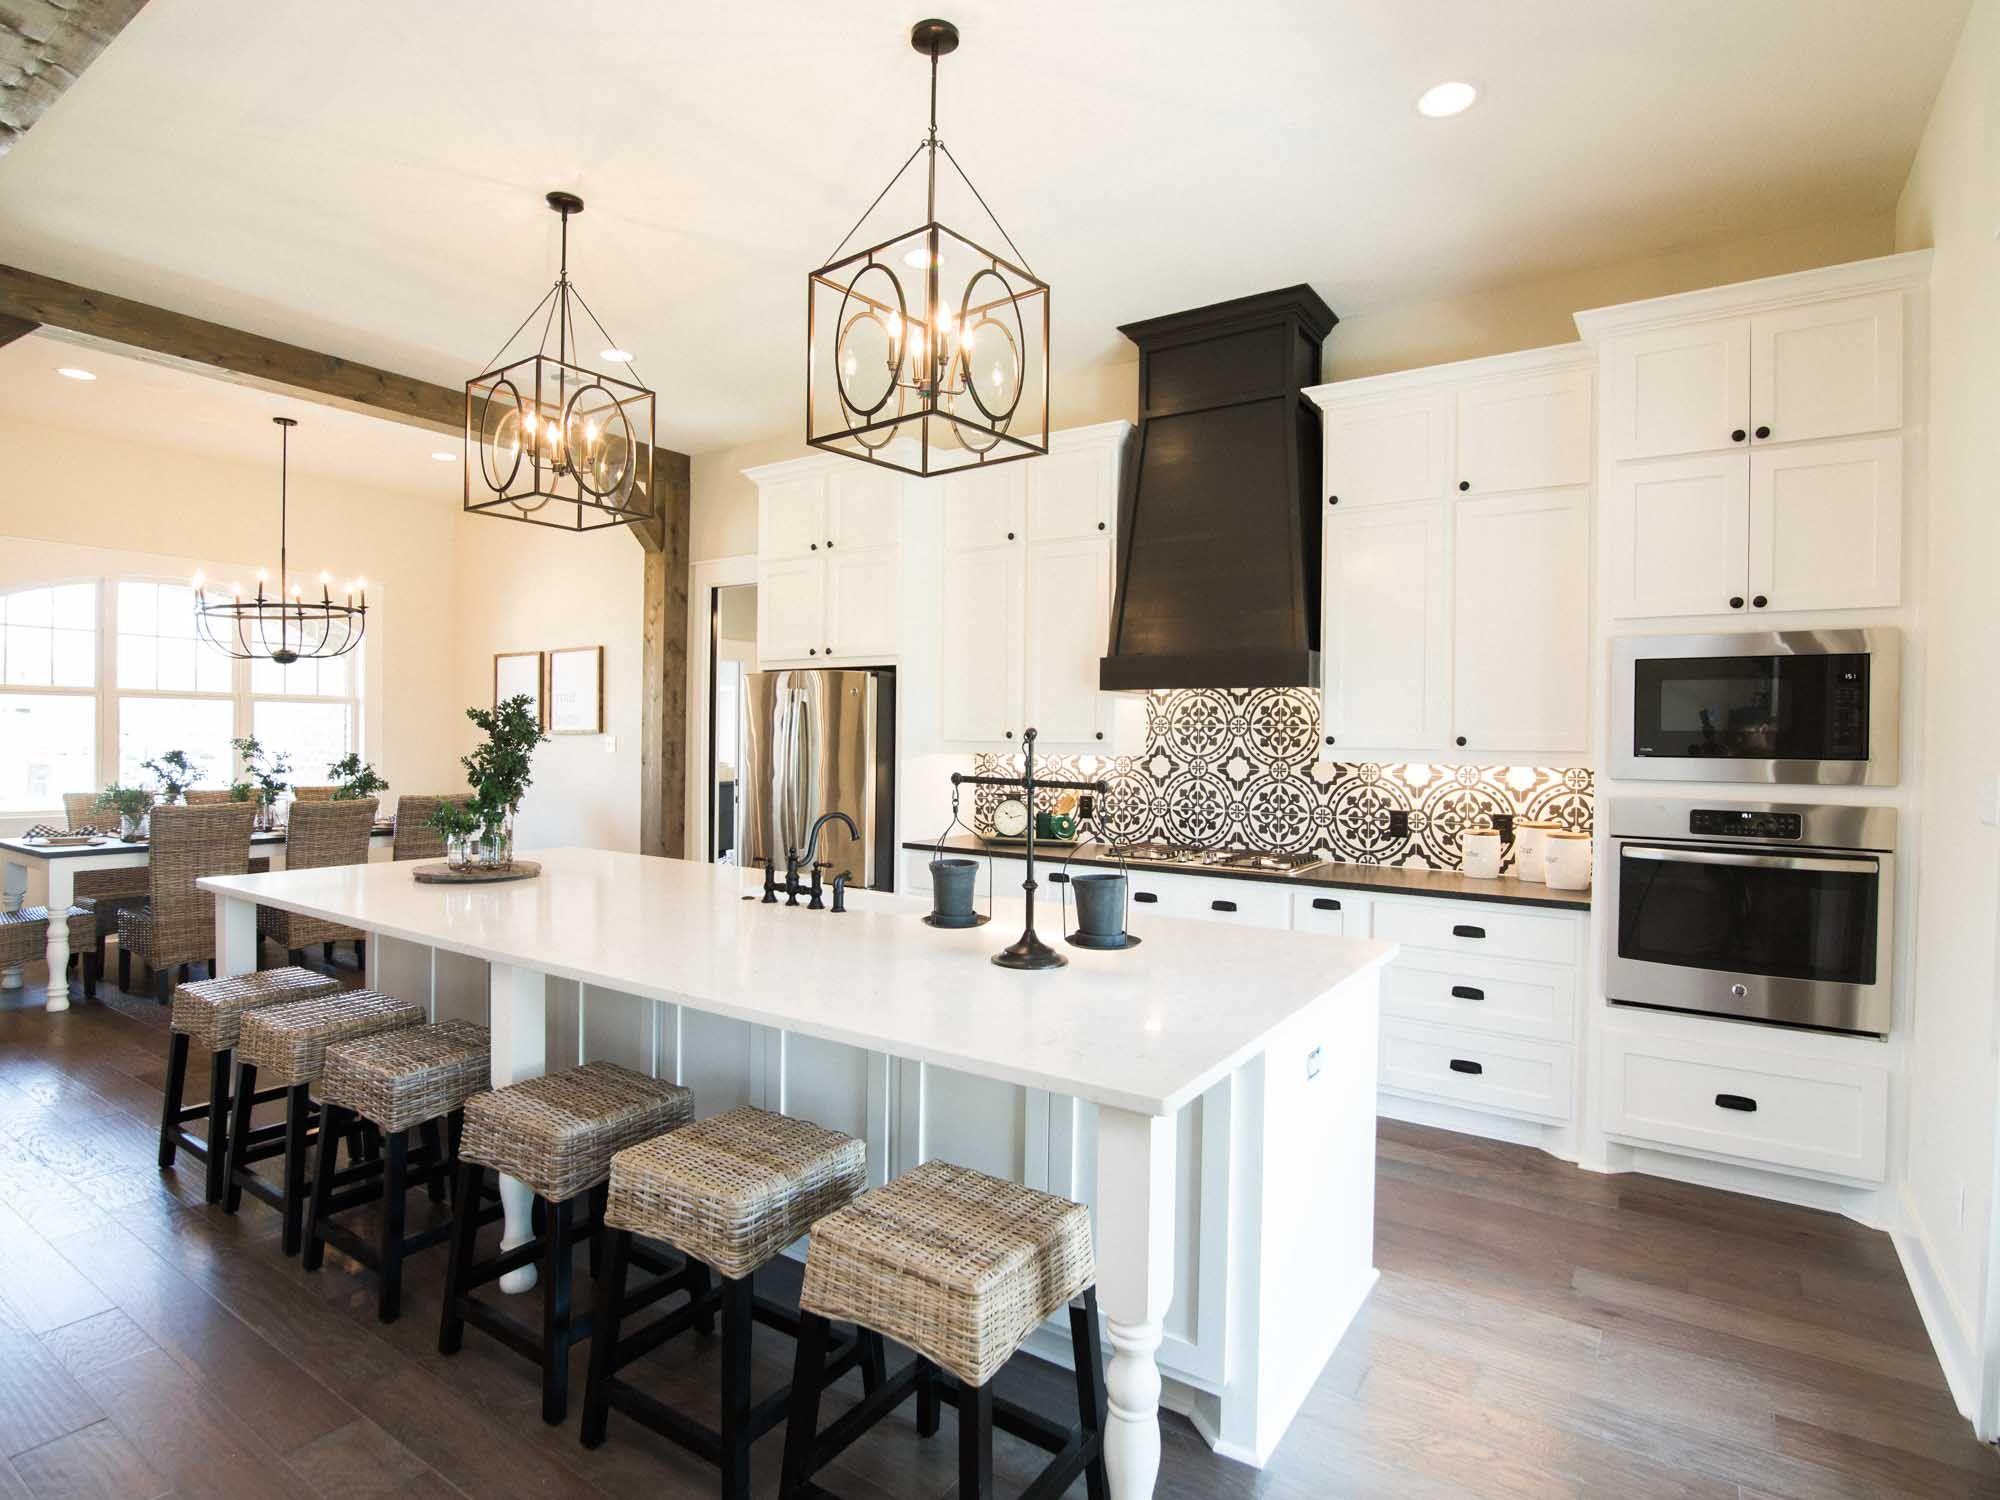 Kitchen Inspiration With Large Island And White Cabinets Elegant Kitchens Kitchen Island Cabinets Kitchen Inspirations